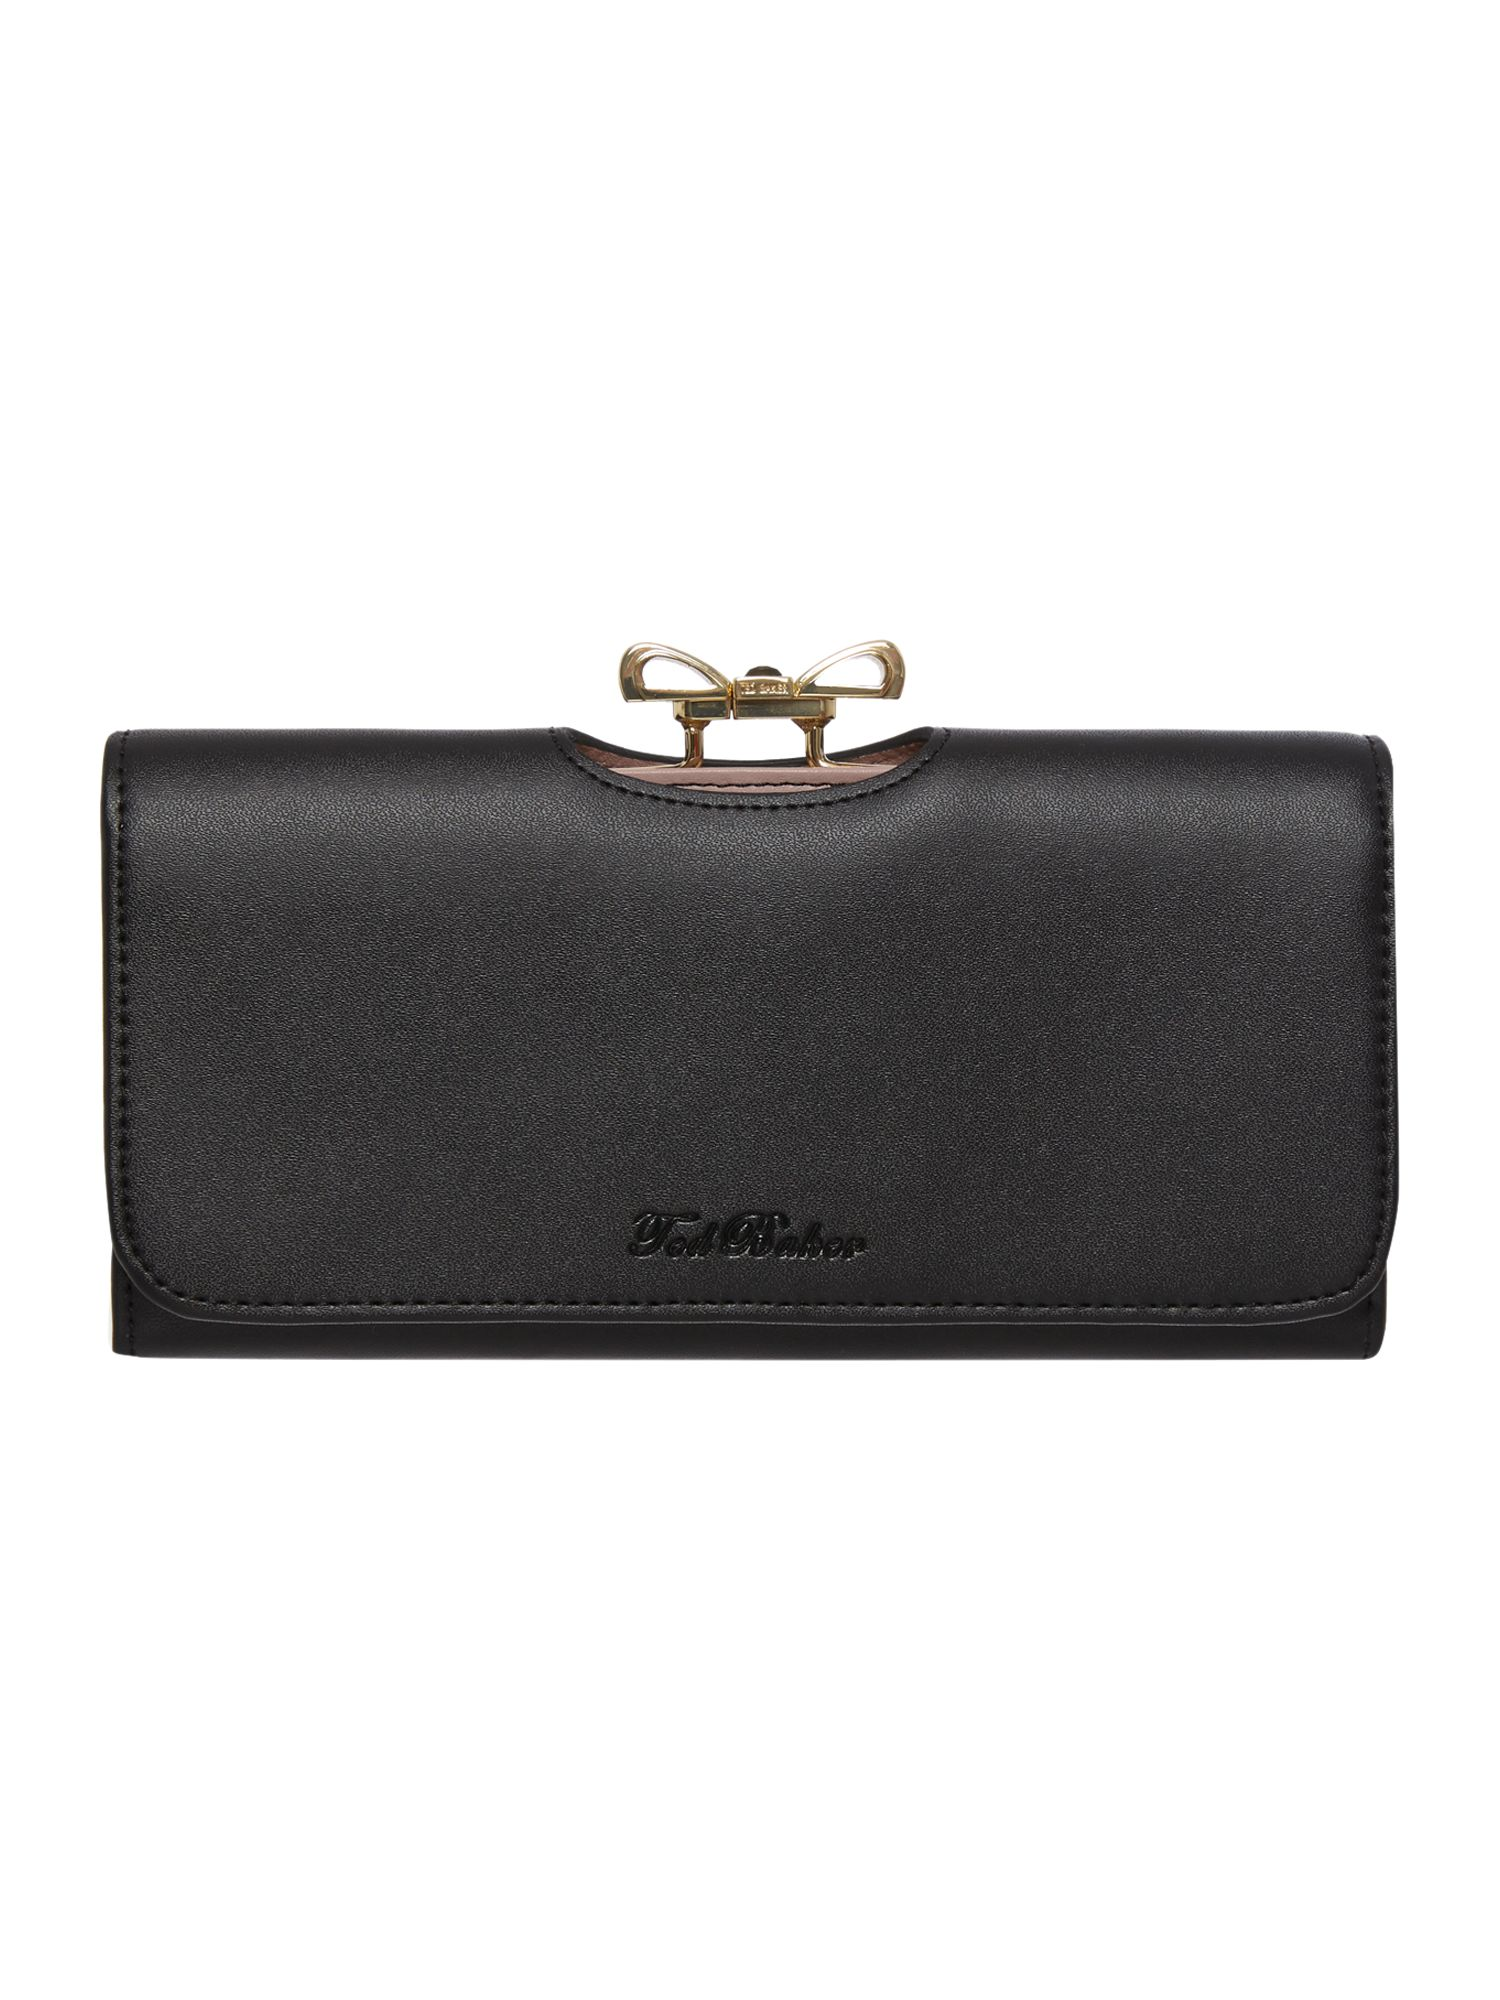 Black crystal bow leather matinee purse